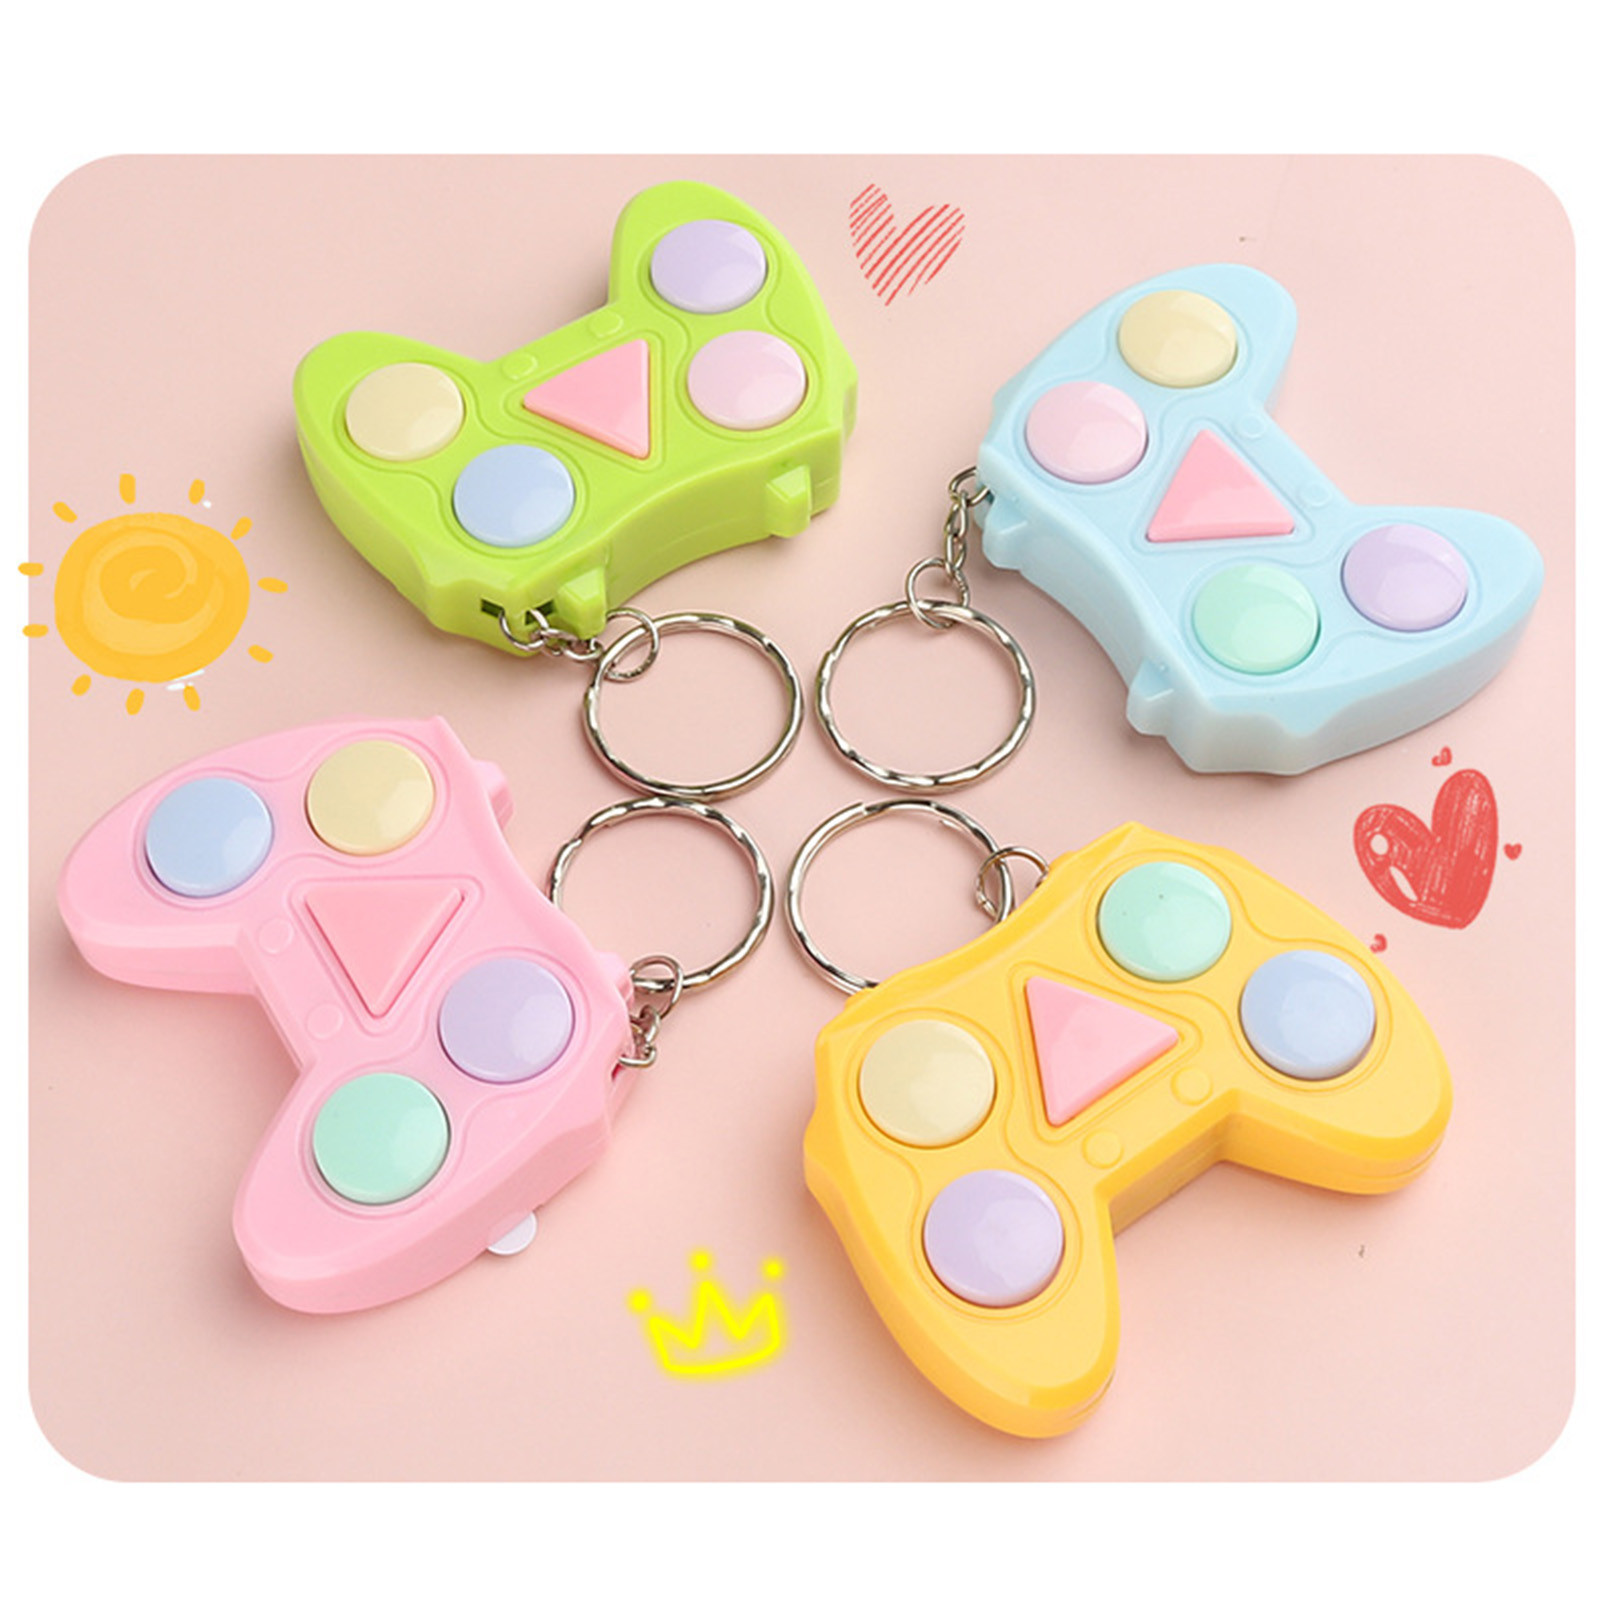 Stress Relief Fidget-Toy-Pack Memory Color-Game-Machine Keychain Gadget Mini-Handle Training